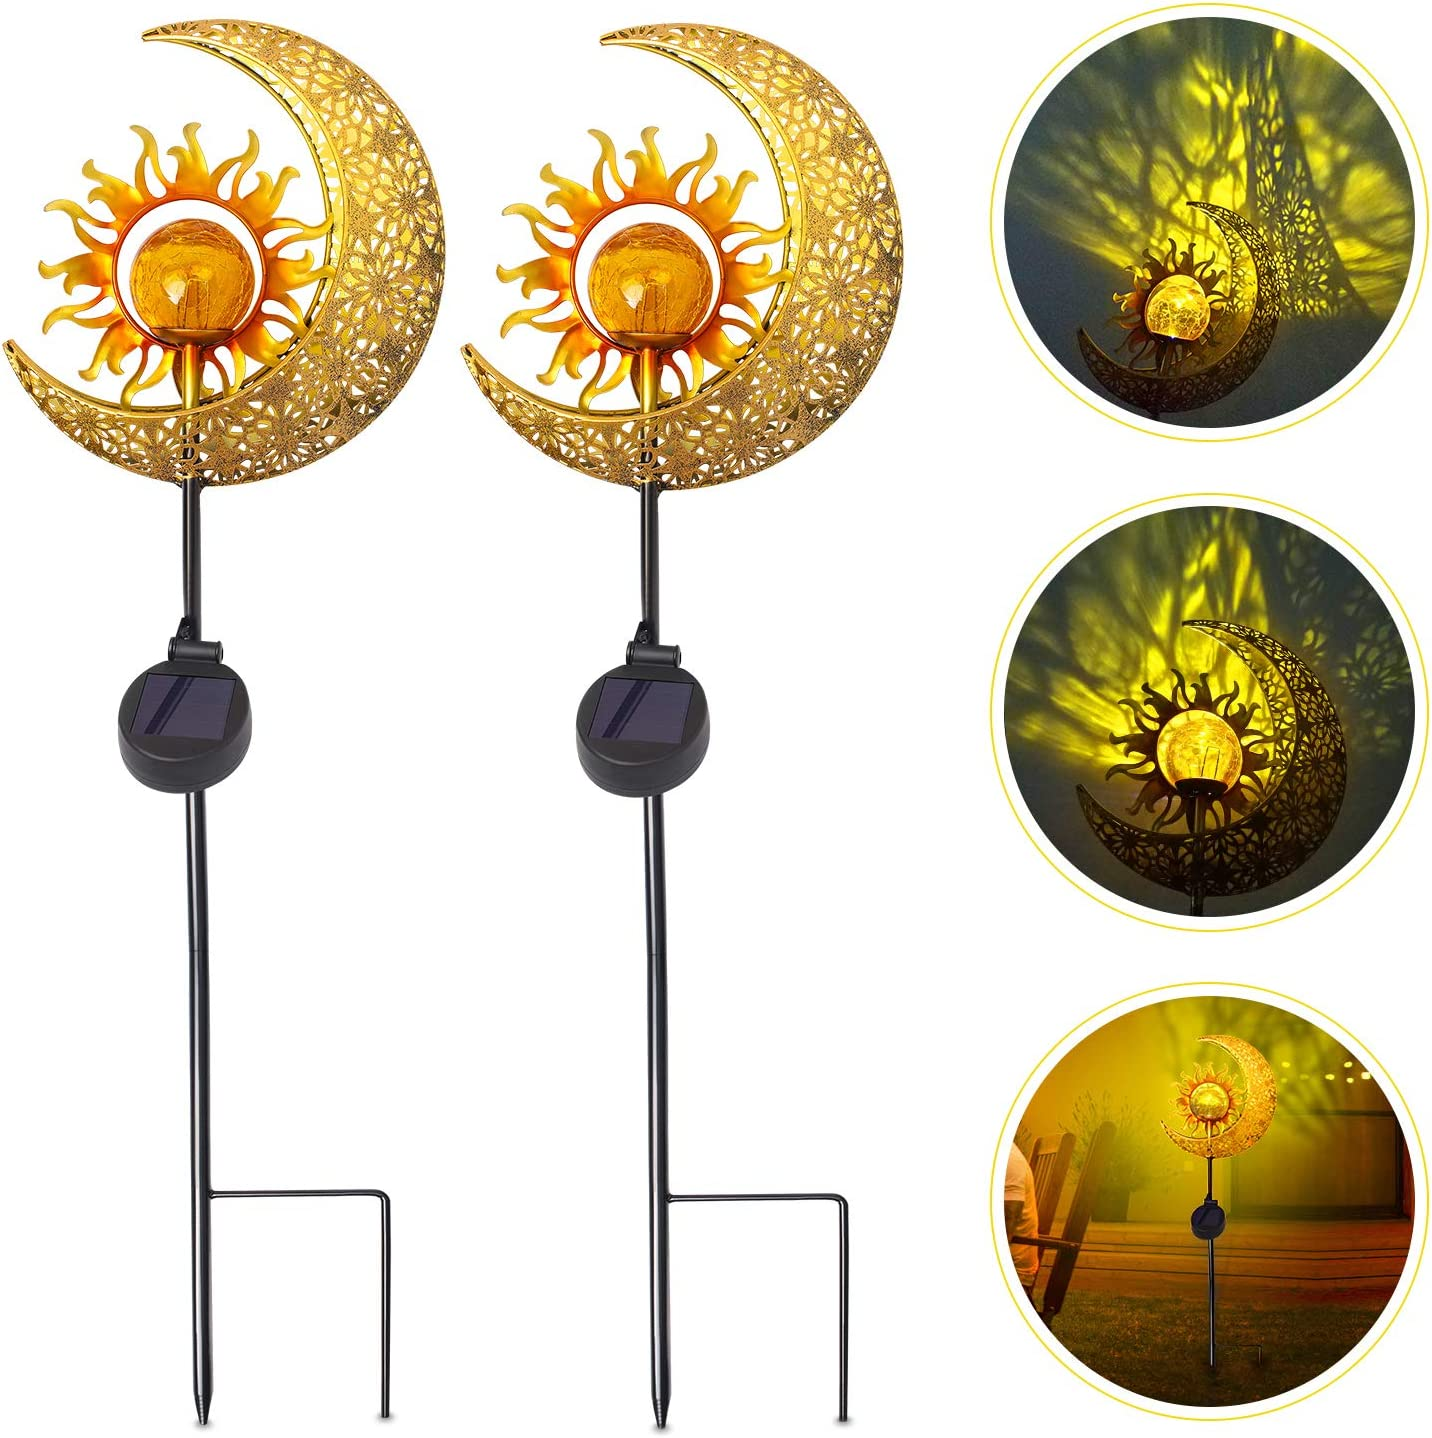 Kyson Sun Moon Solar Lights Garden Outdoor Waterproof Metal Decorative Stakes Crackle Glass Globe Warm White LED for Walkway,Yard,Lawn,Patio (2 Pack)